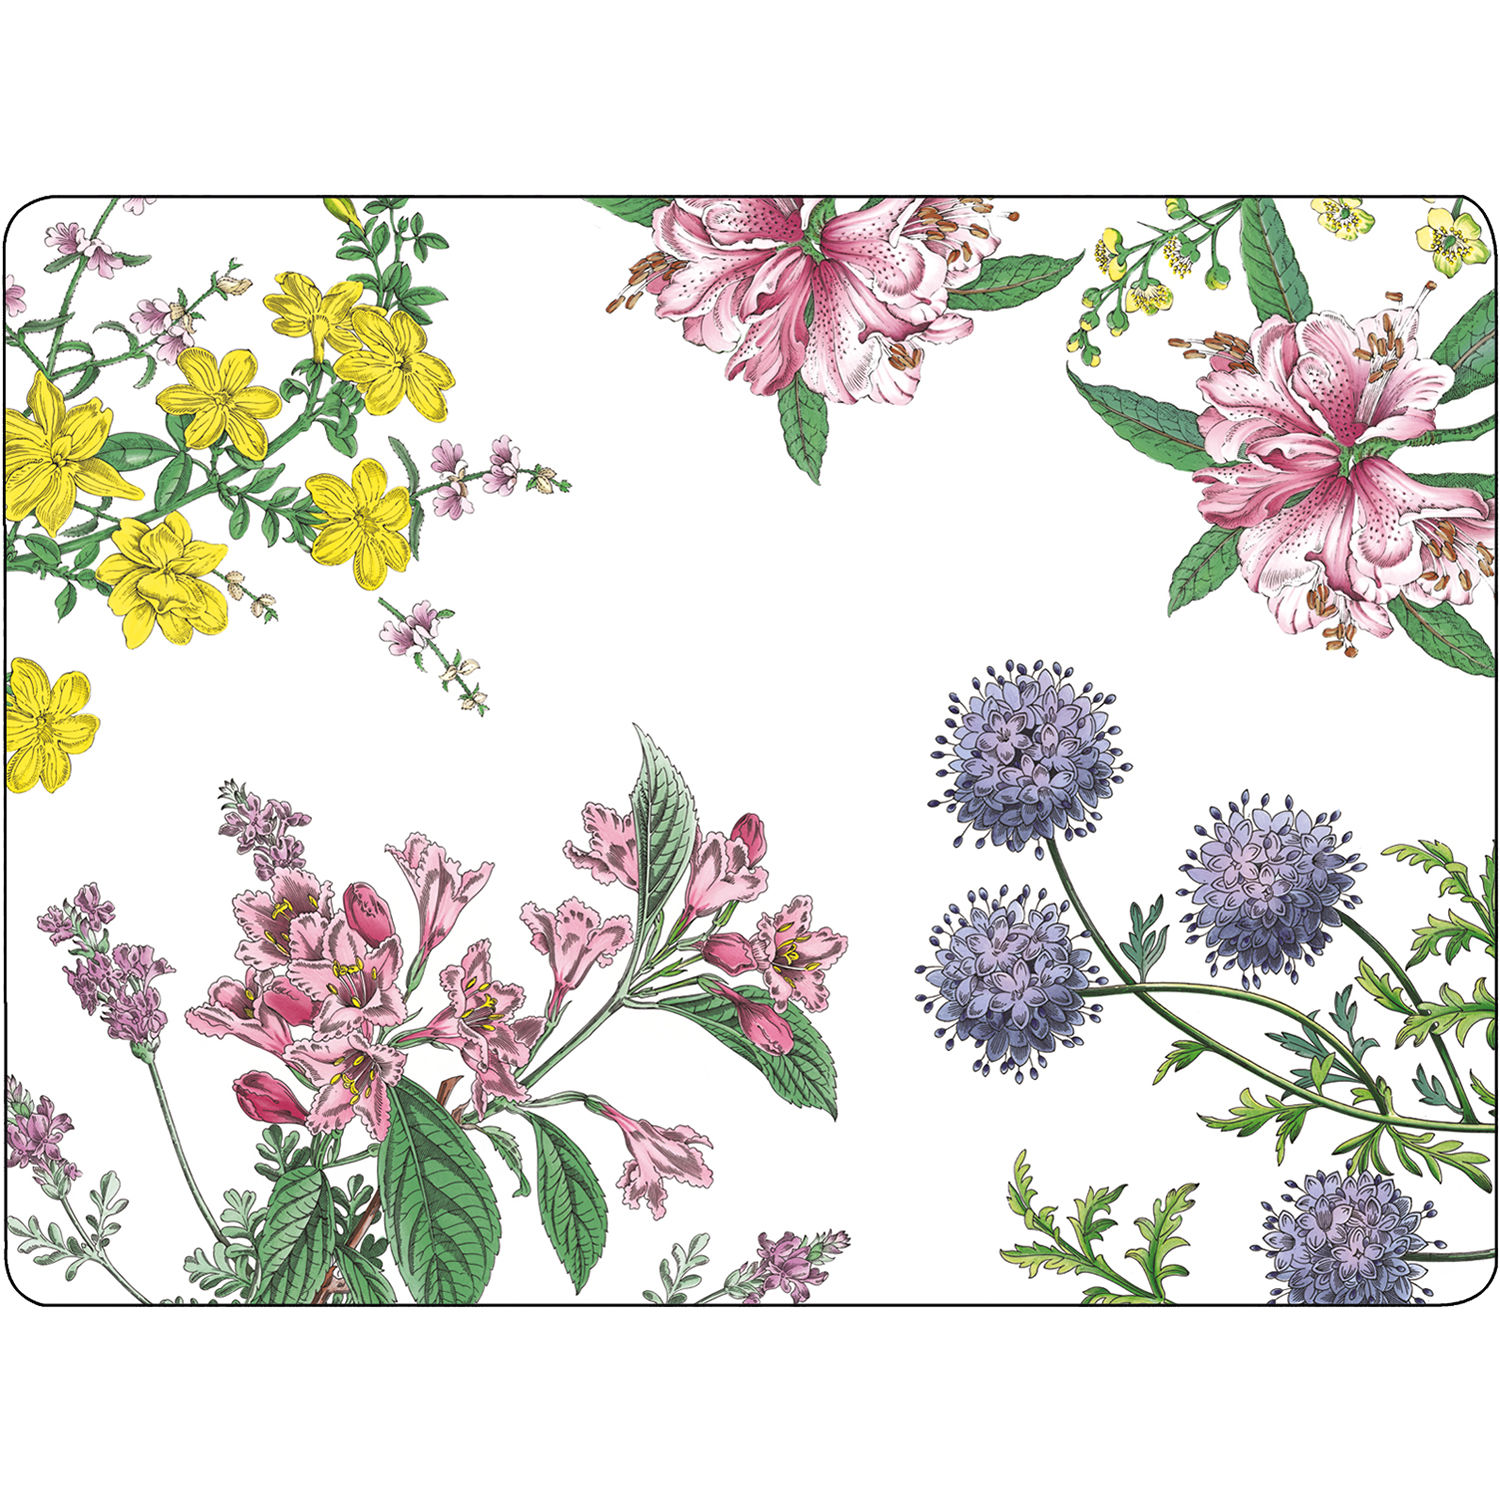 Pimpernel Fruits And Floral Stafford Blooms Large Placemats Set Of 4 Louis Potts